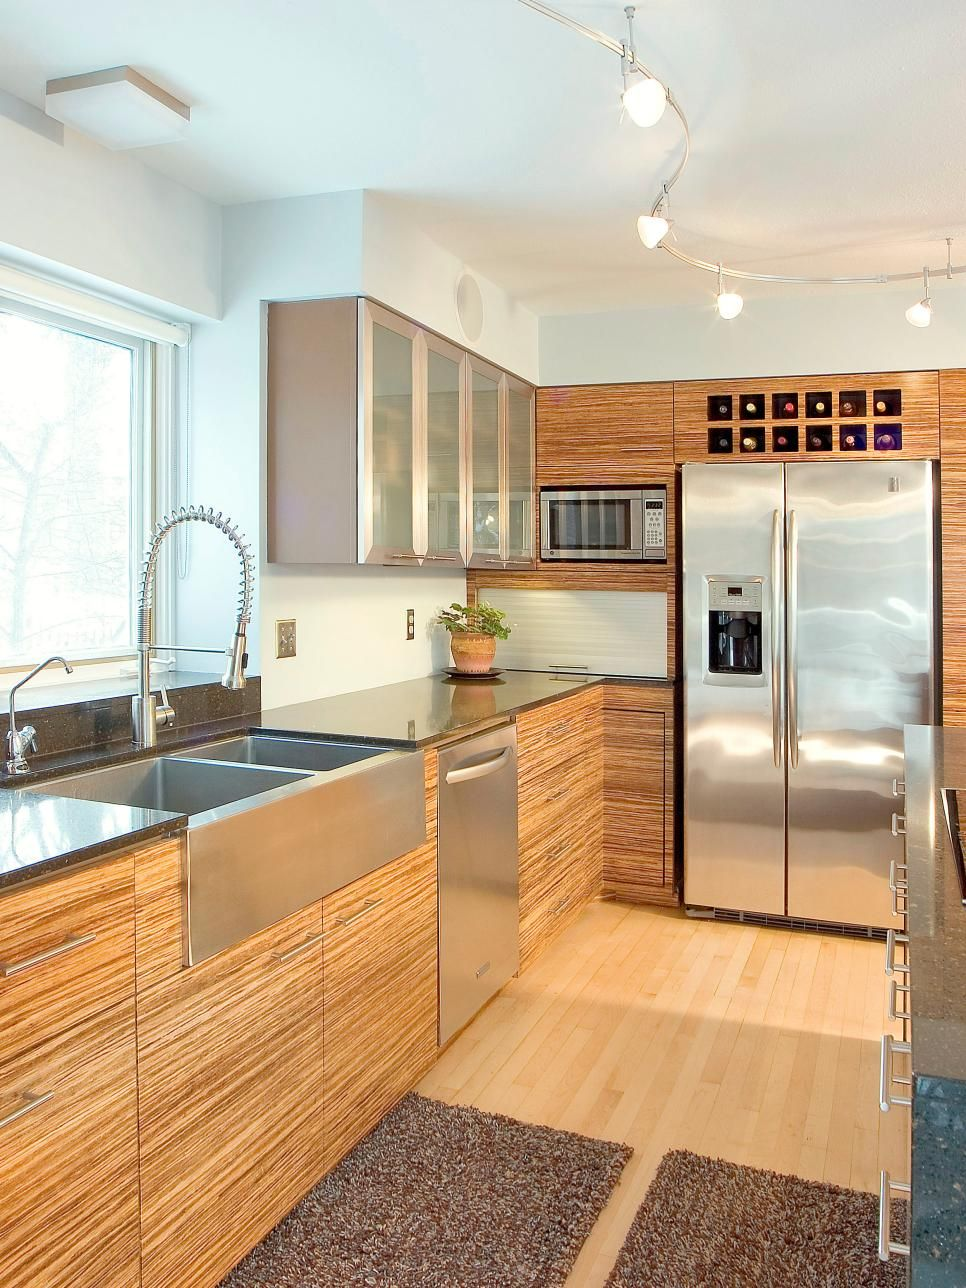 Kitchen Cabinet Styles And Trends Kitchen Cabinet Styles Bamboo Kitchen Cabinets Modern Kitchen